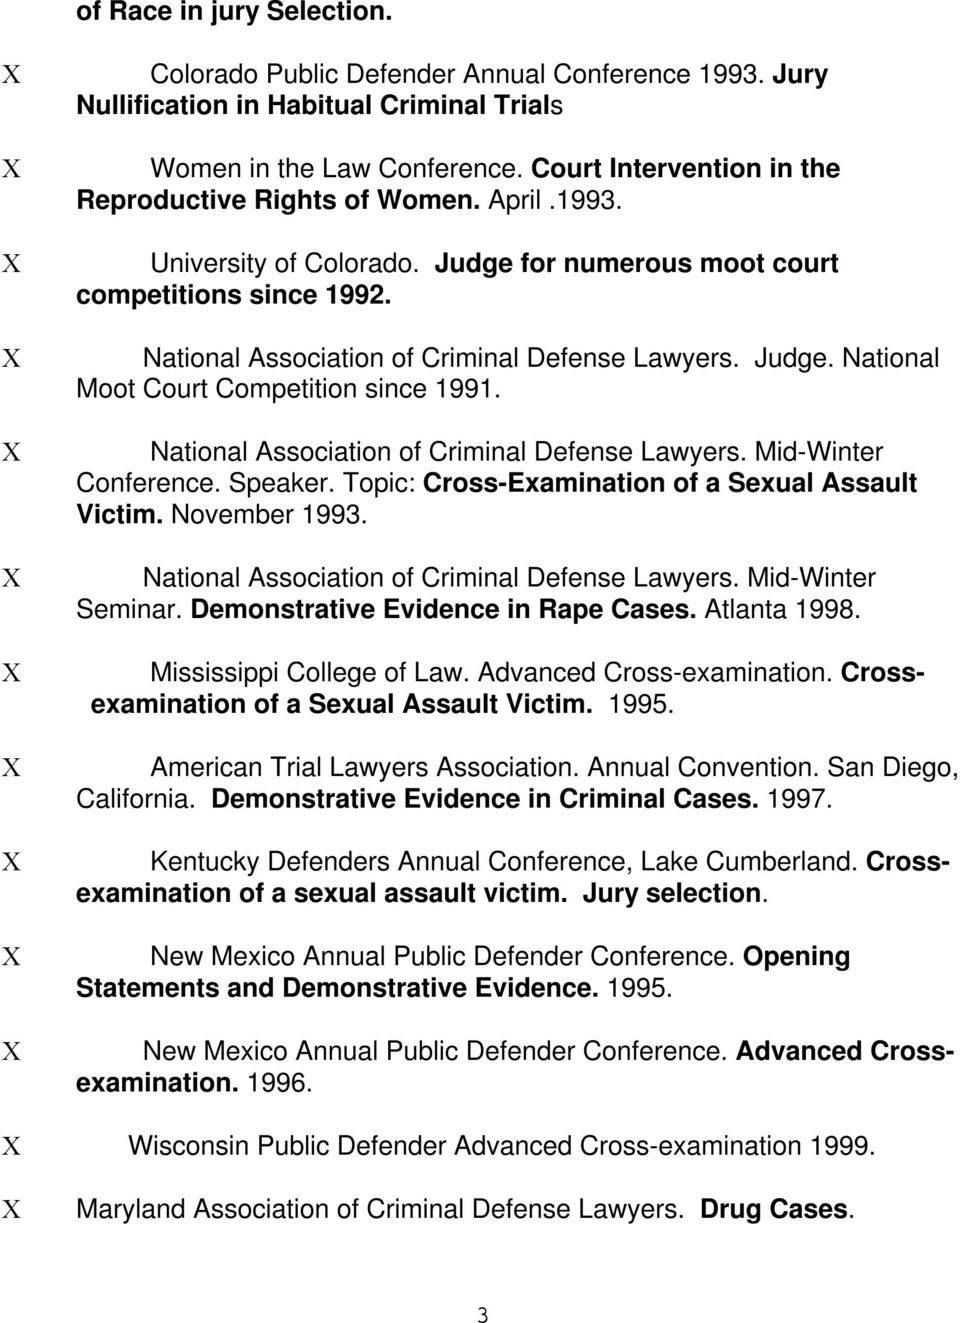 Judge. National Moot Court Competition since 1991. National Association of Criminal Defense Lawyers. Mid-Winter Conference. Speaker. Topic: Cross-Examination of a Sexual Assault Victim. November 1993.